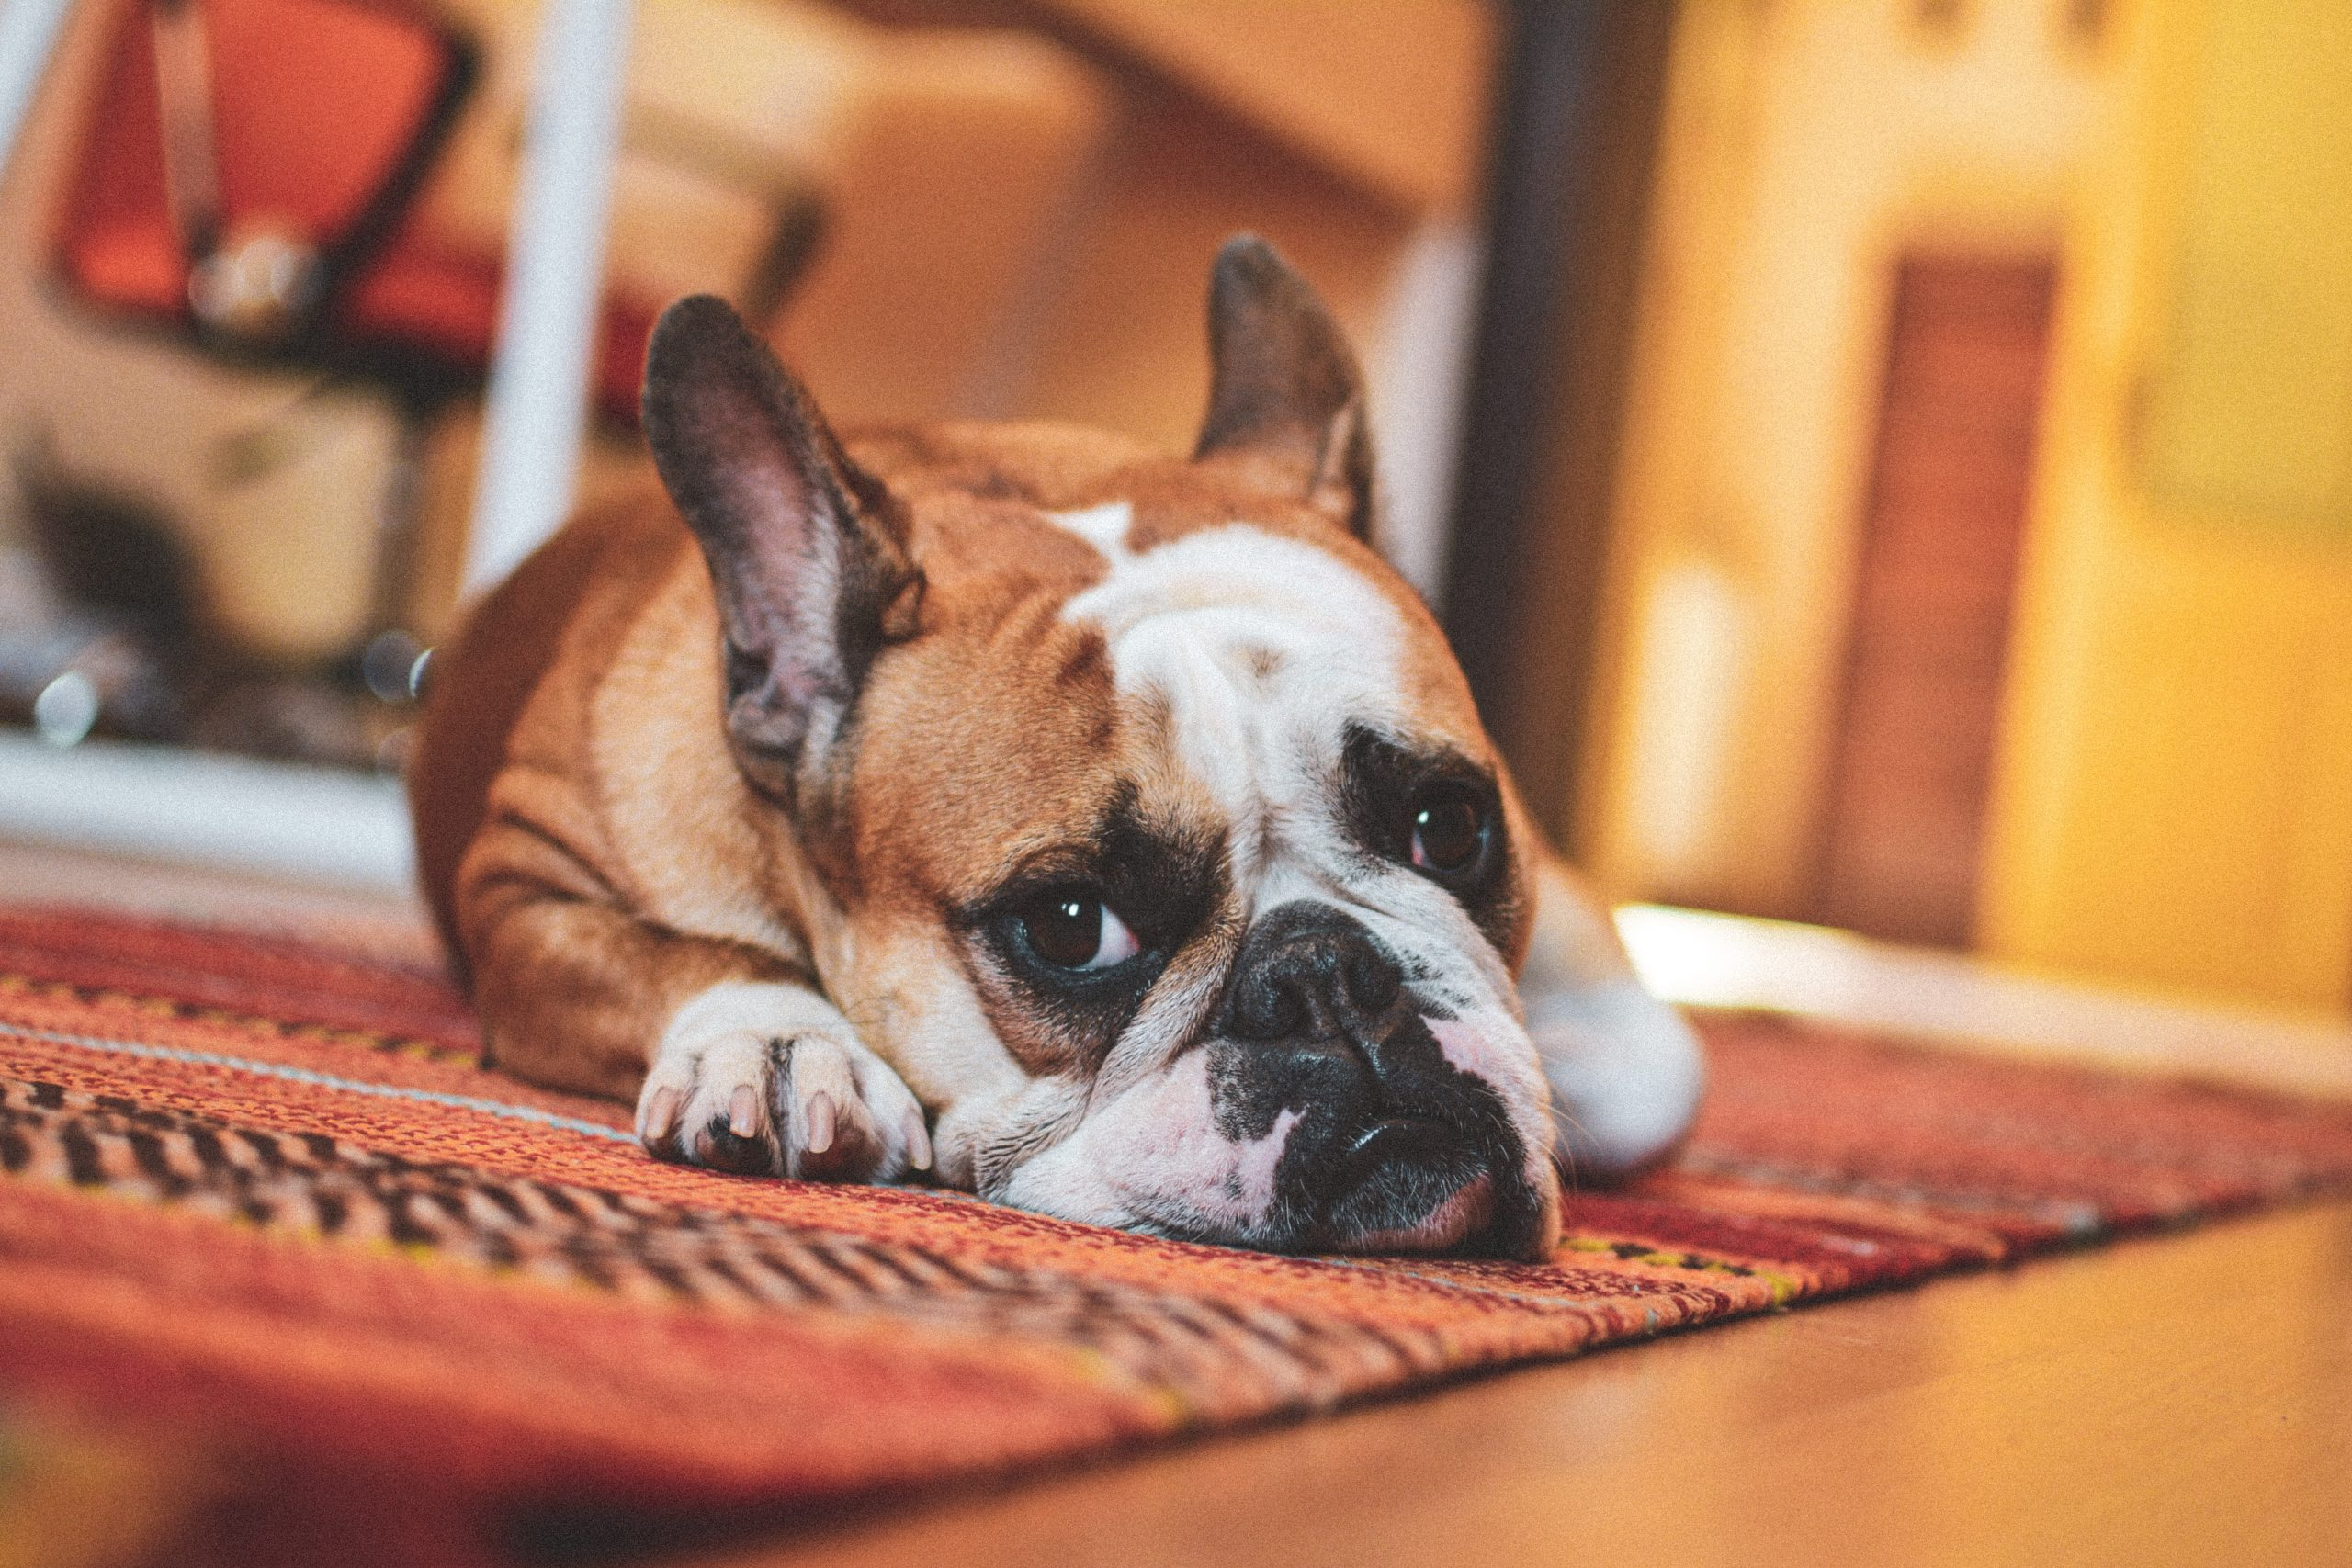 Home Renovation Tips for Pet-Friendly Floors and Carpets – Our Guide